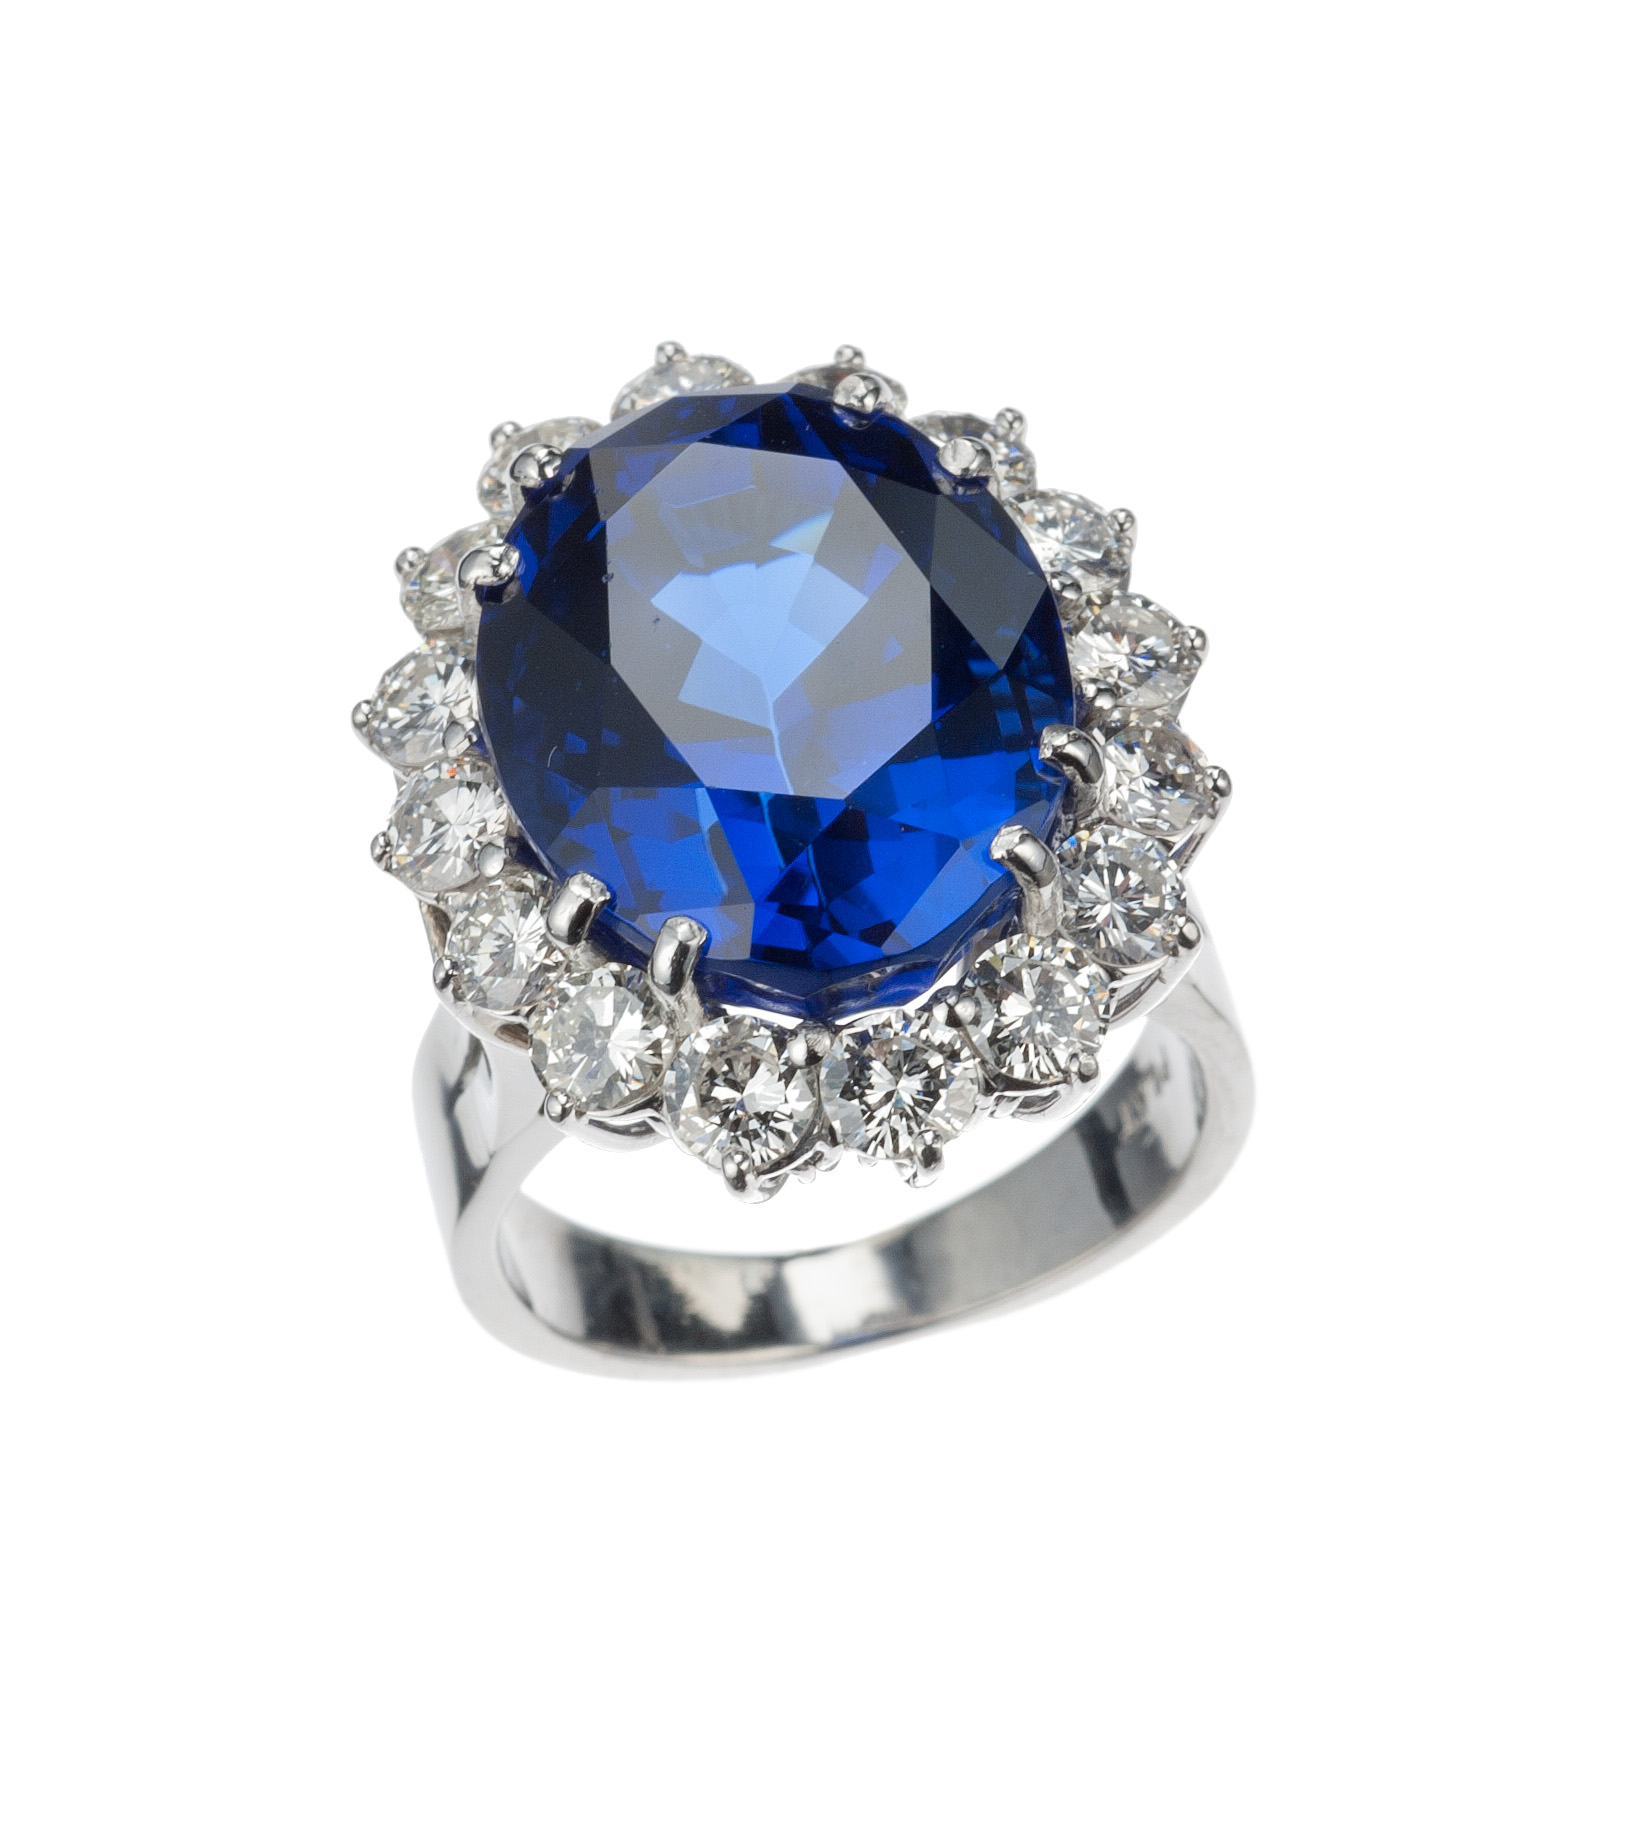 Tanzanite and diamond halo ring in platinum